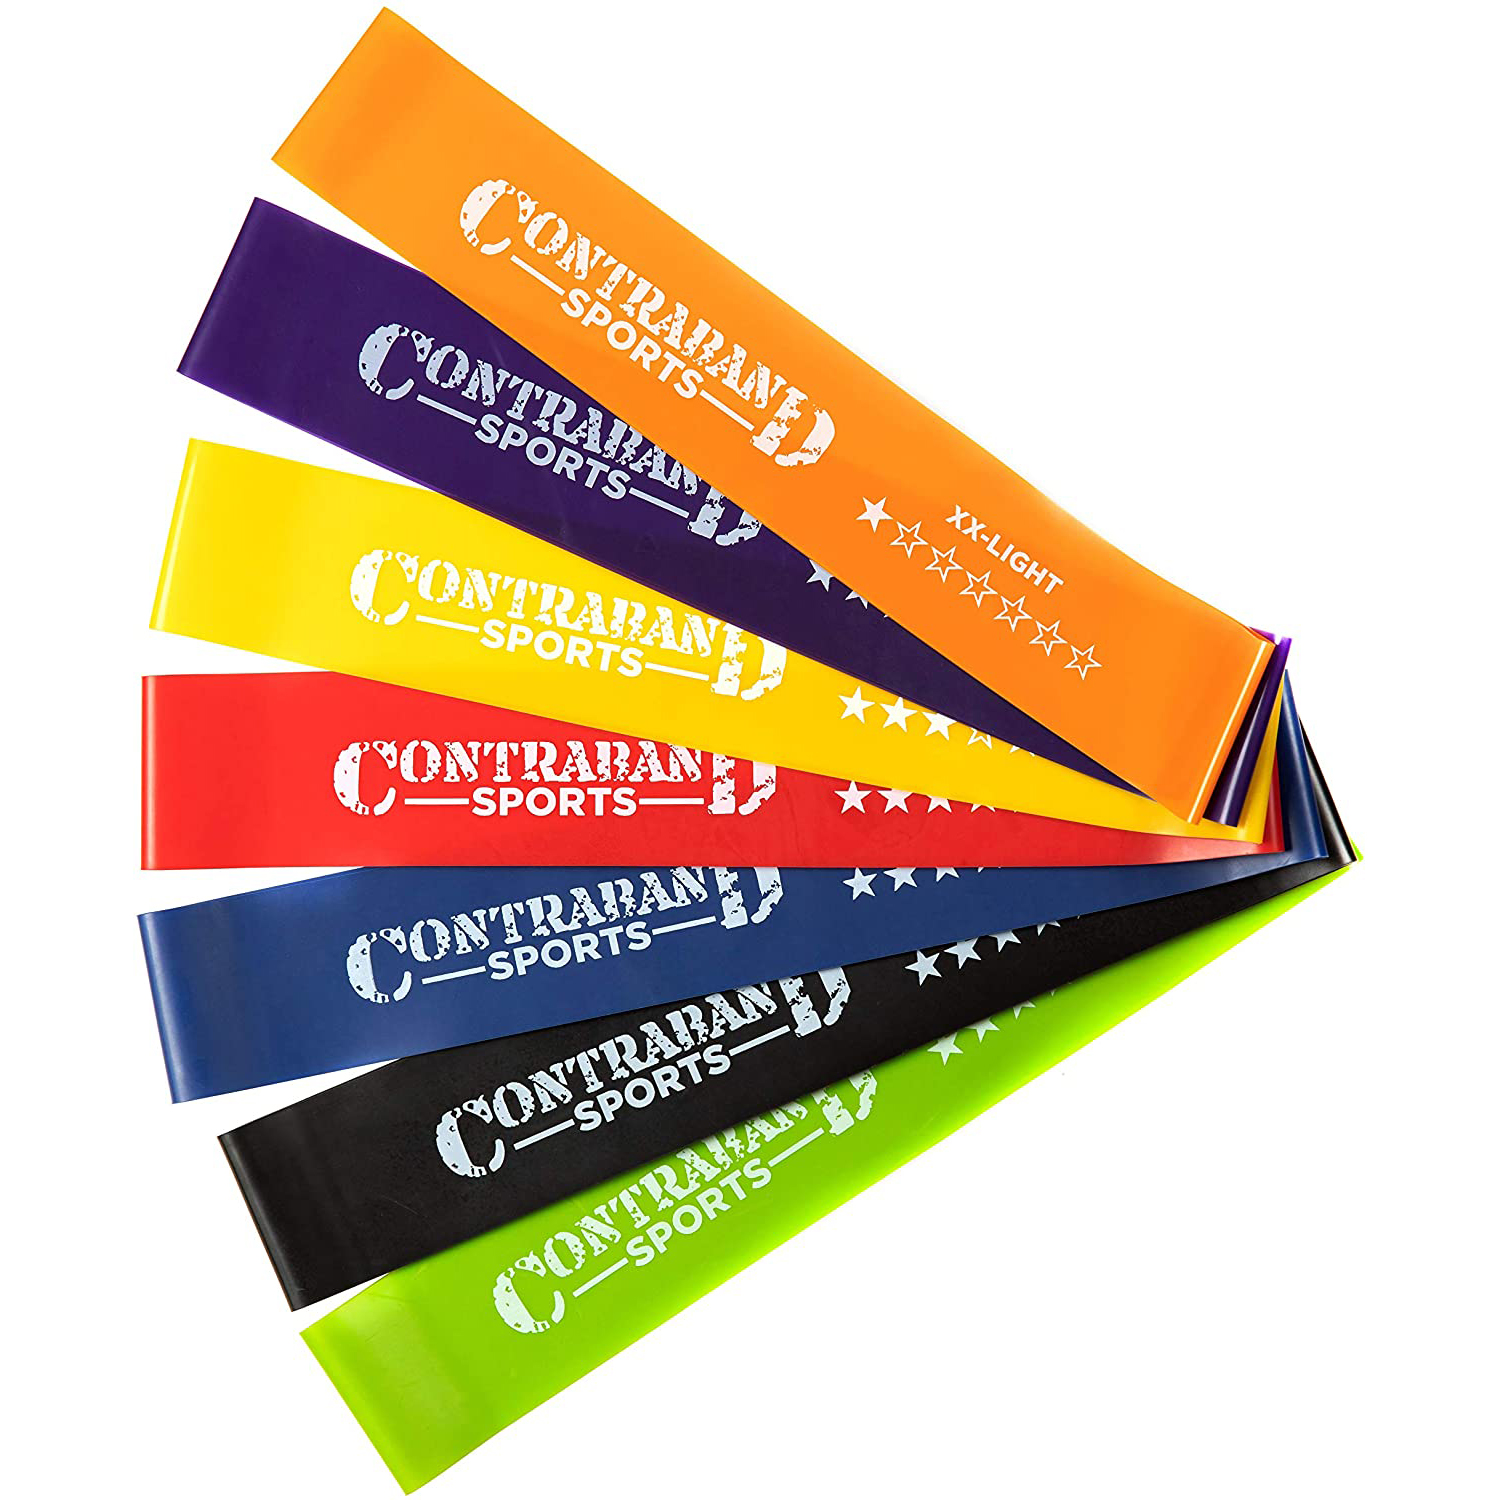 Contraband Sports resistance bands